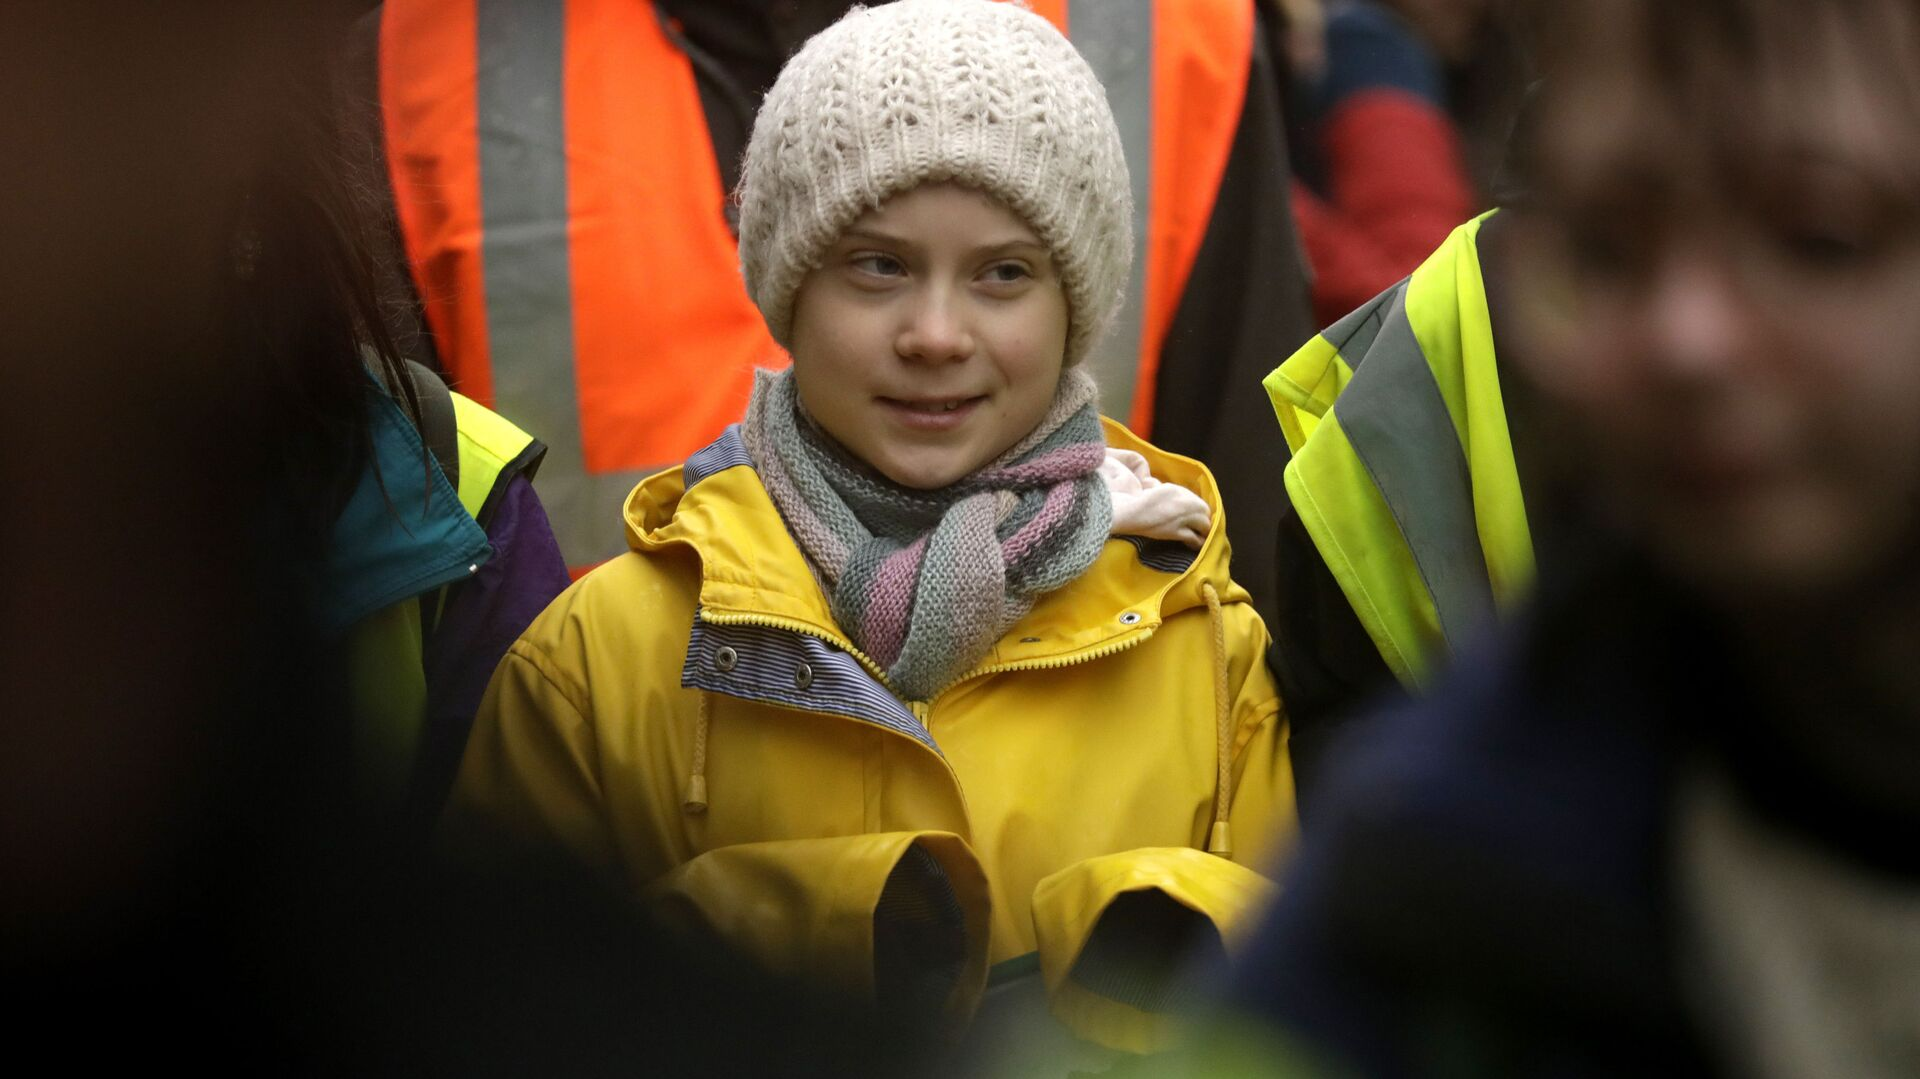 Climate activist Greta Thunberg, from Sweden marches with other demonstrators as she participates in a school strike climate protest in Bristol, south west England, Friday, Feb. 28, 2020. - Sputnik Italia, 1920, 05.03.2021